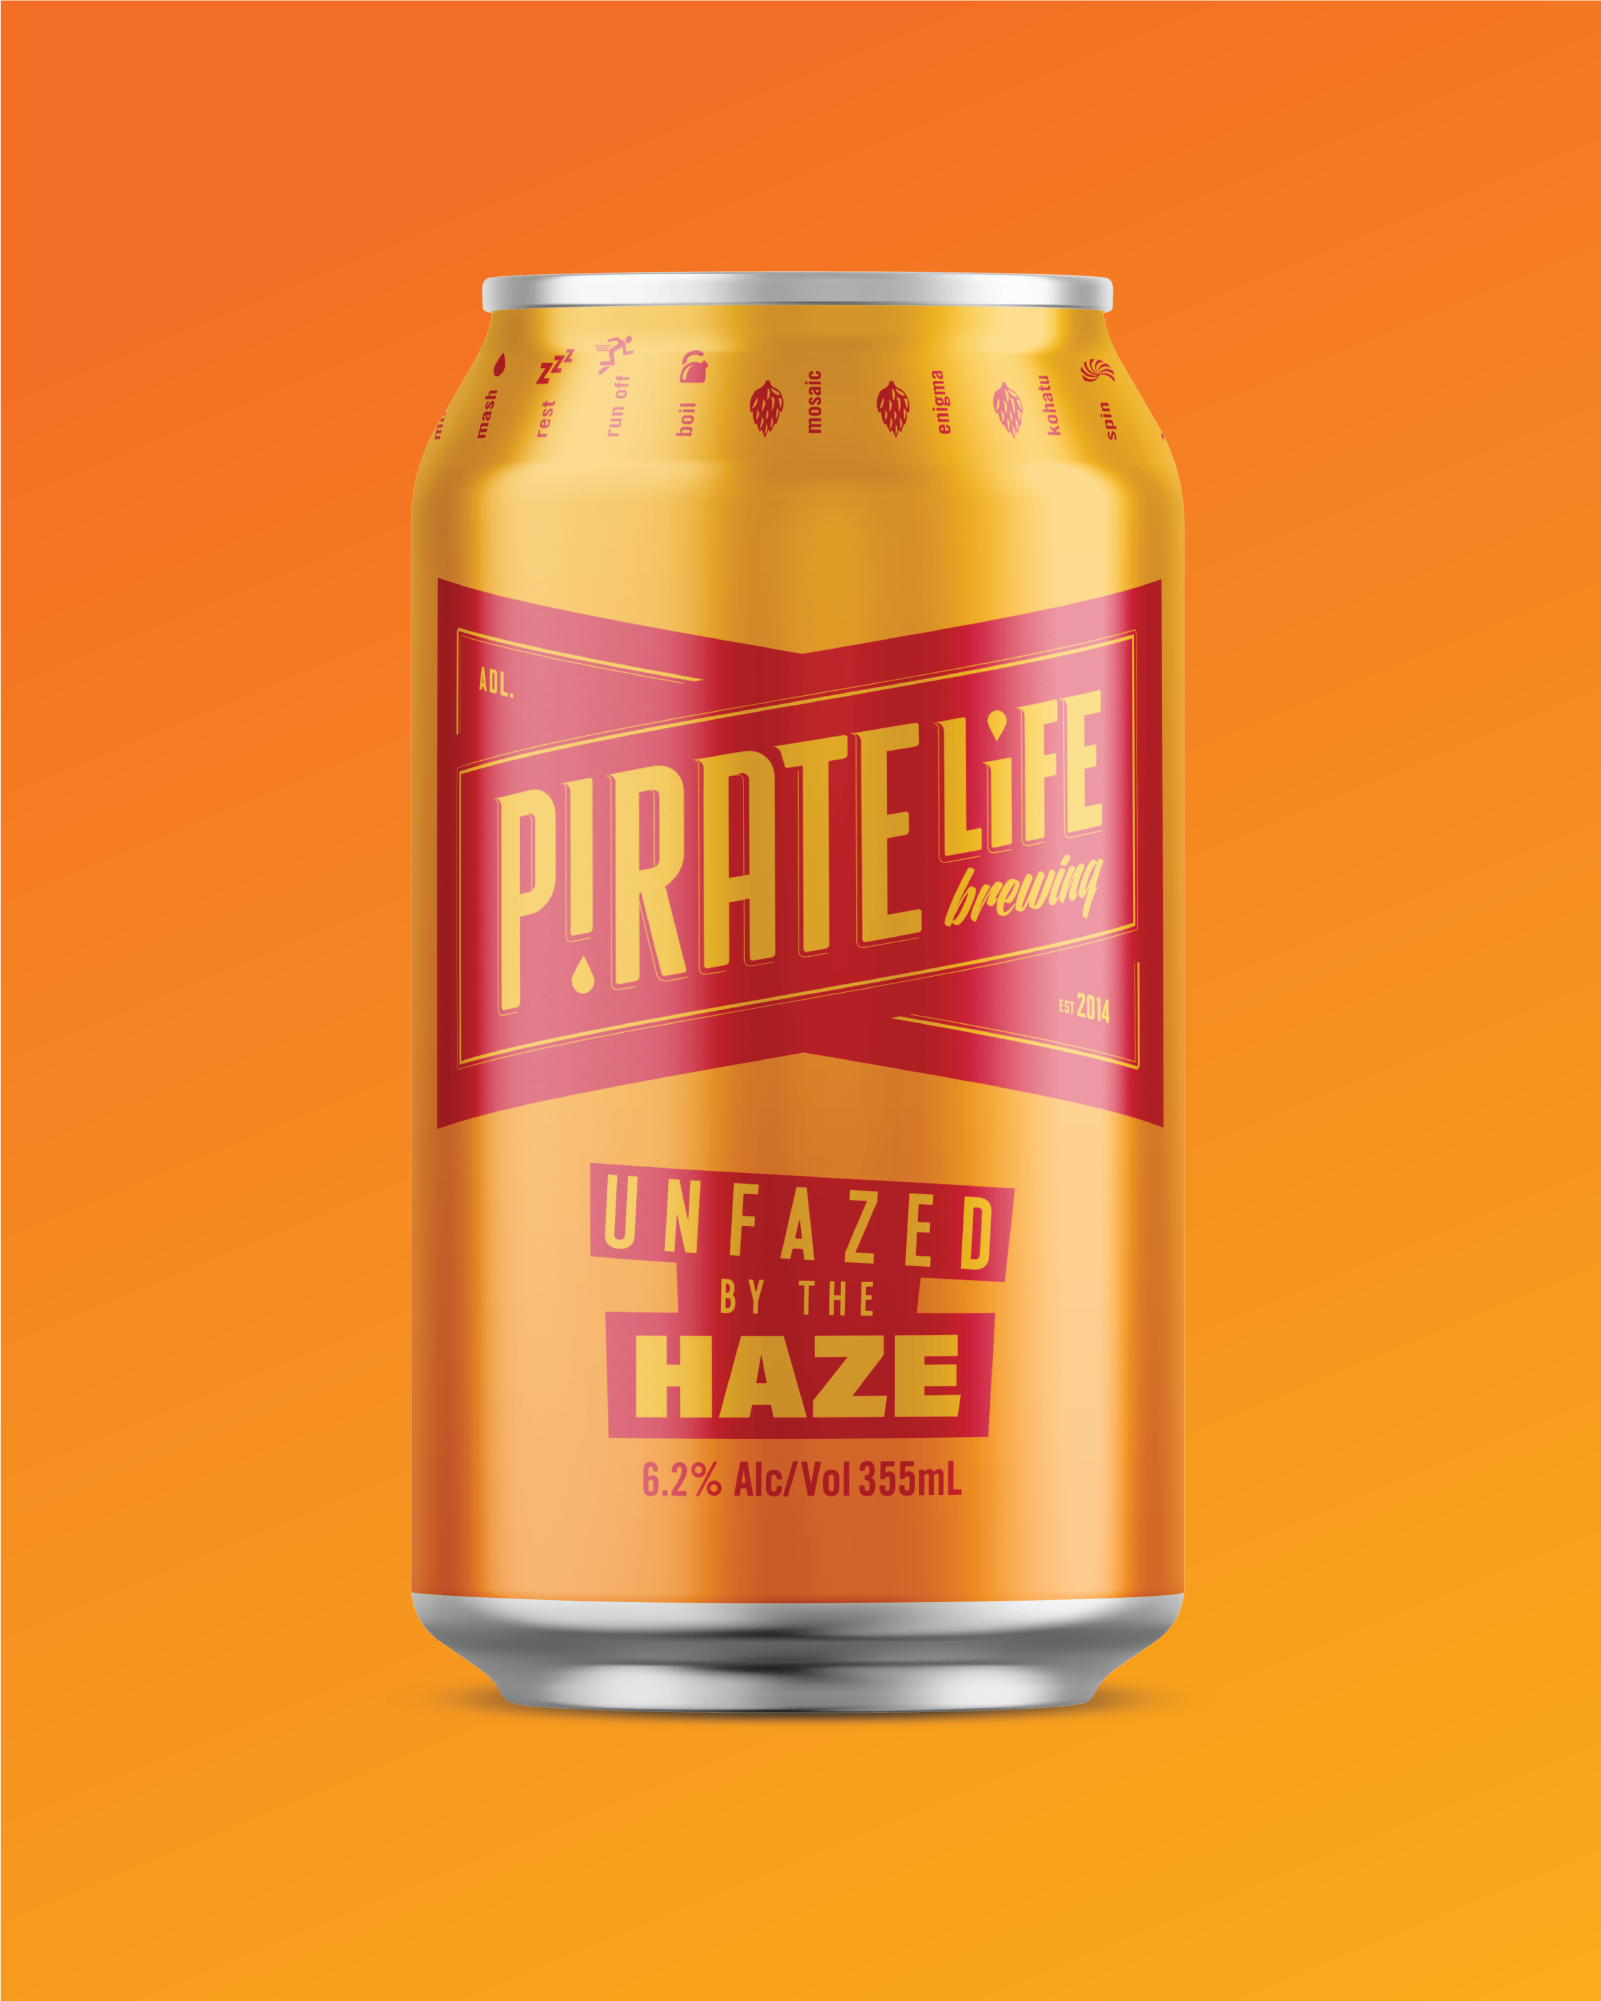 PL_Unfazed_By_The_Haze_Can-02